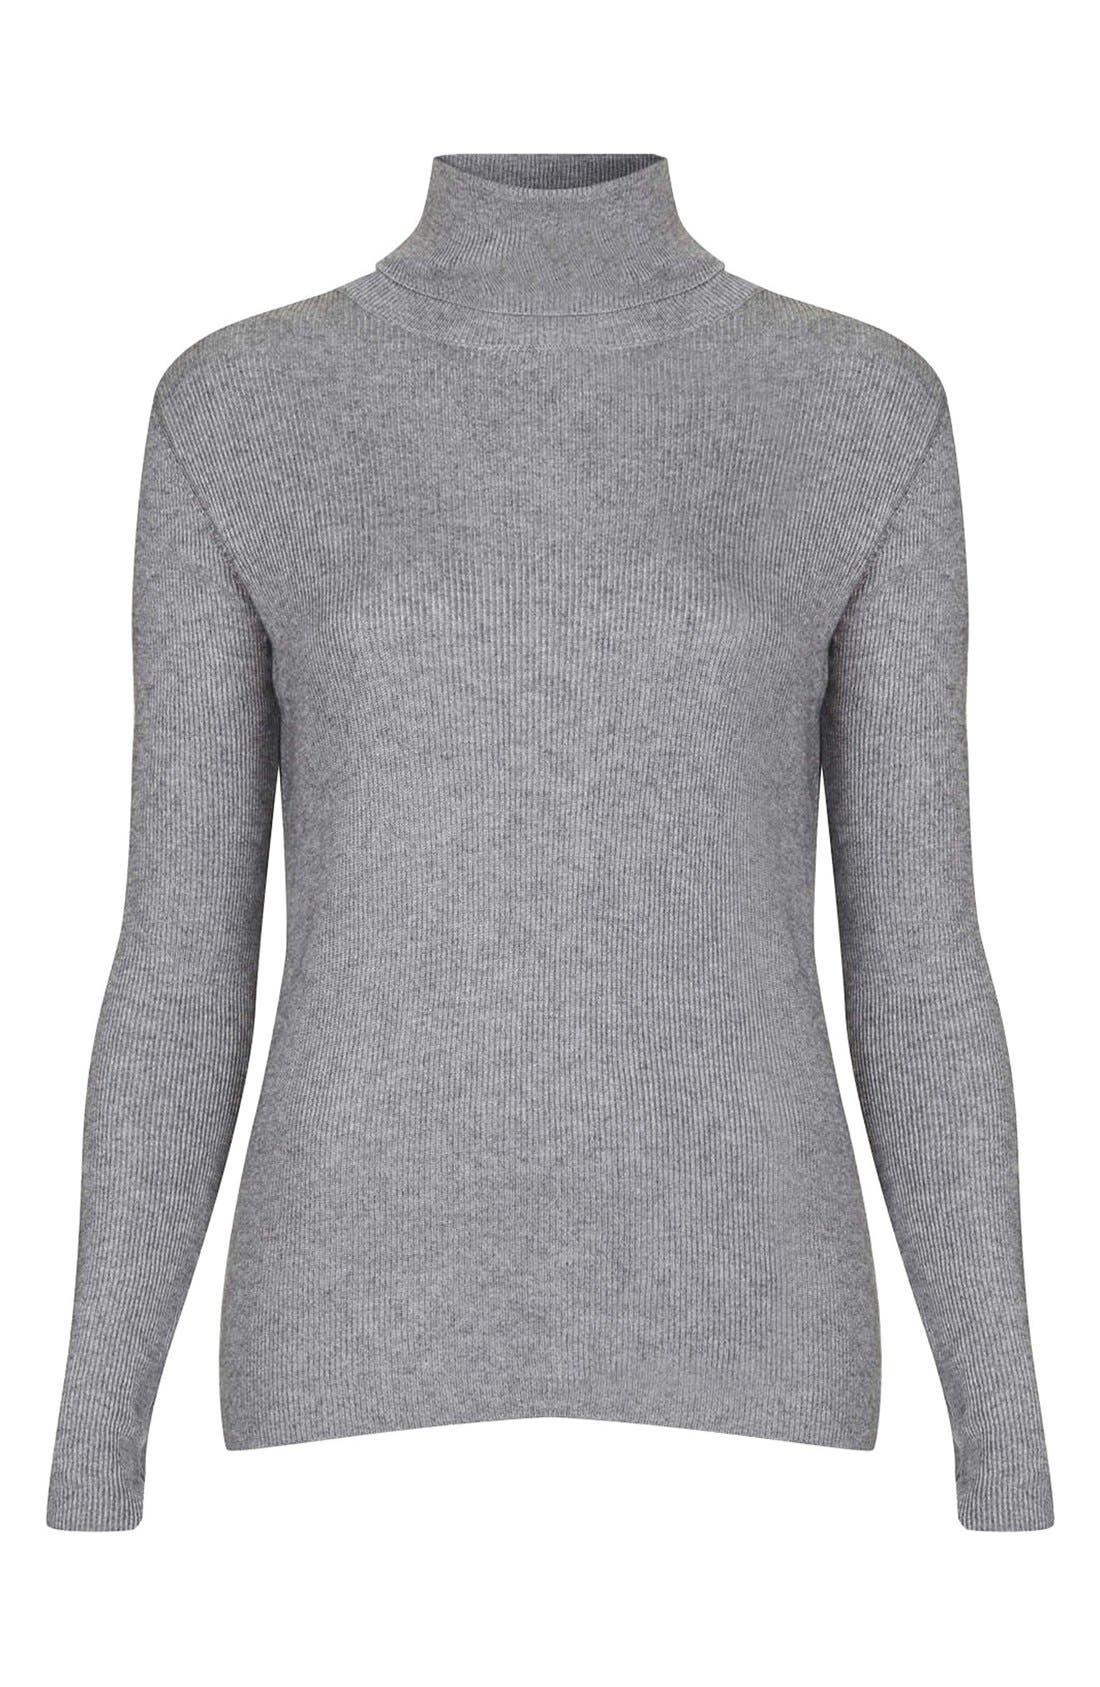 Alternate Image 1 Selected - Topshop Ribbed Turtleneck Sweater